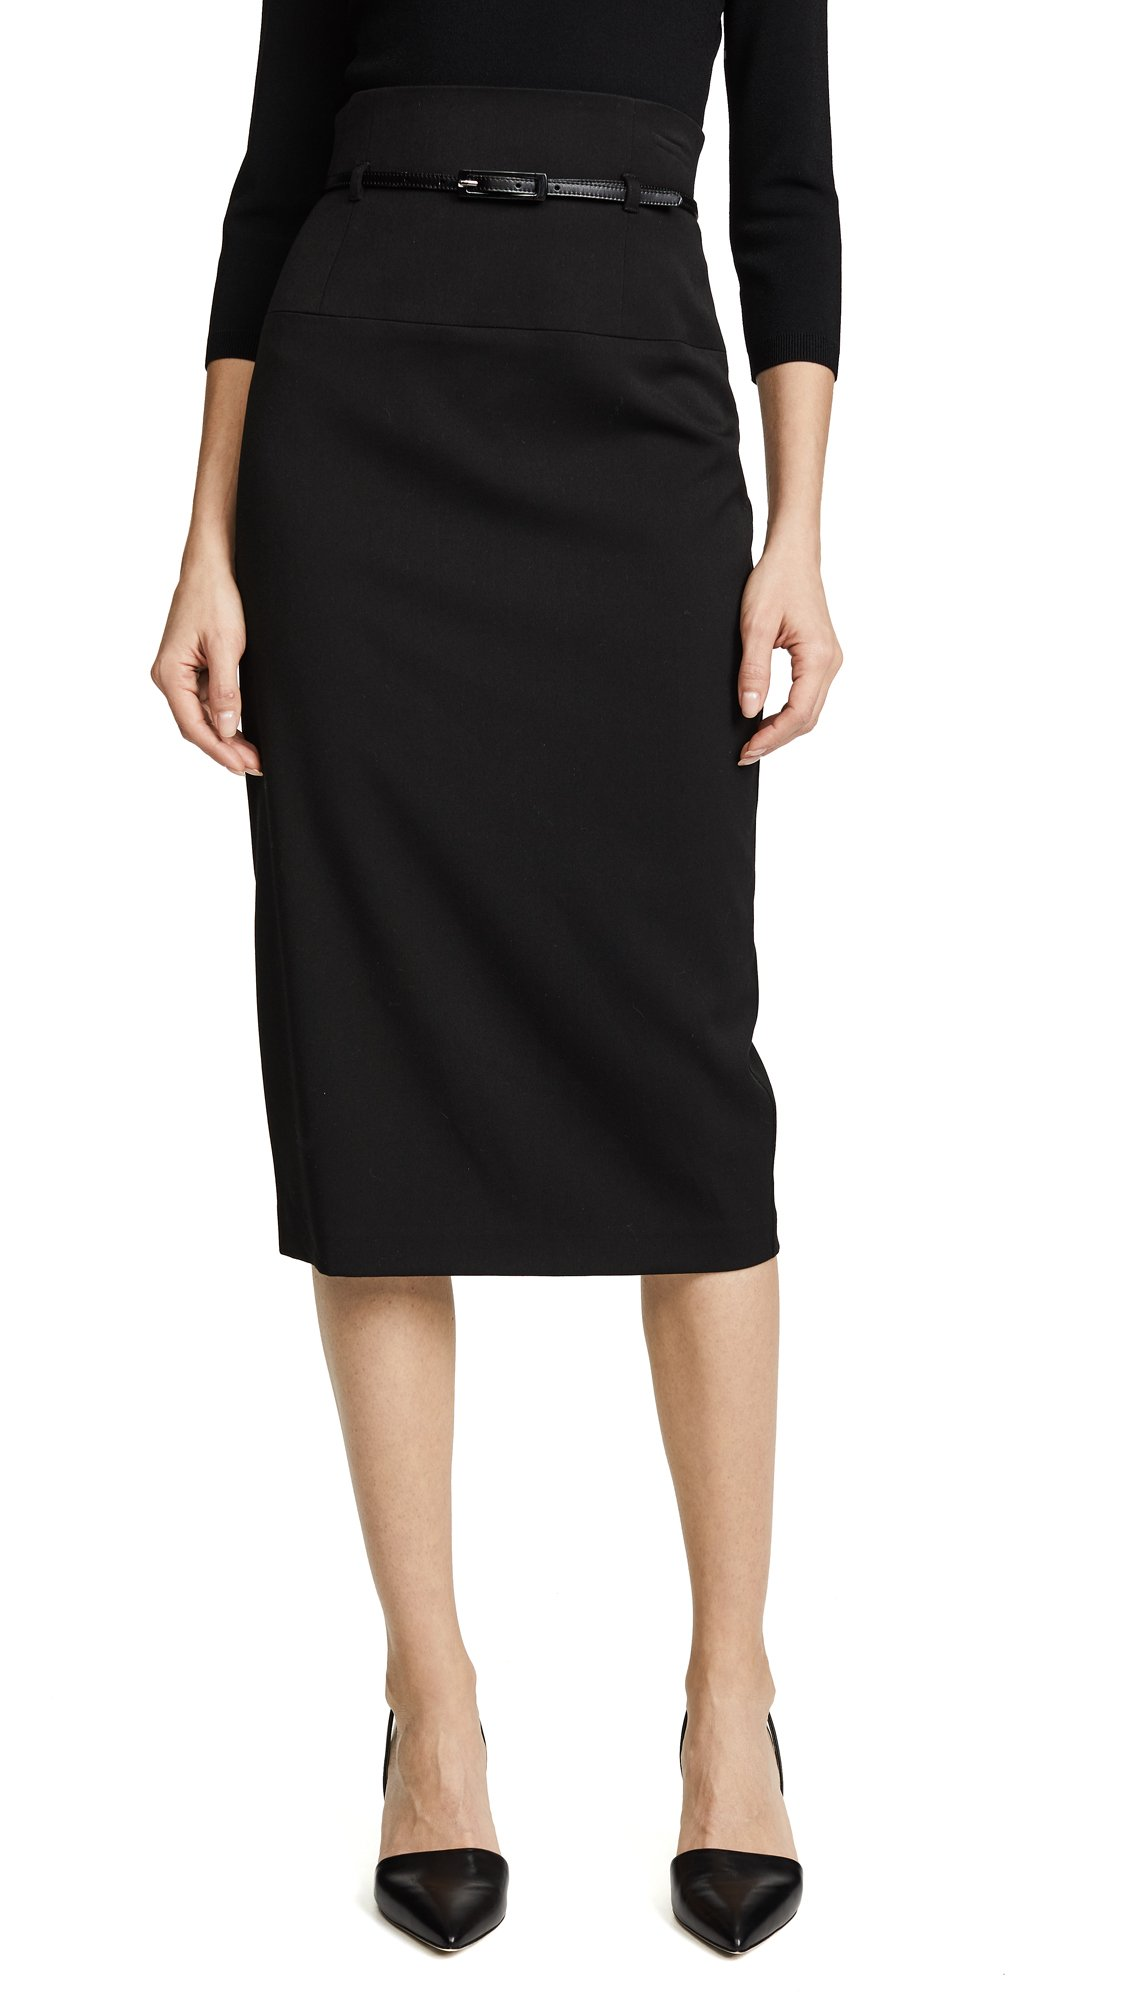 Black Halo Women's High Waisted Pencil Skirt, Black, 10 by Black Halo (Image #1)